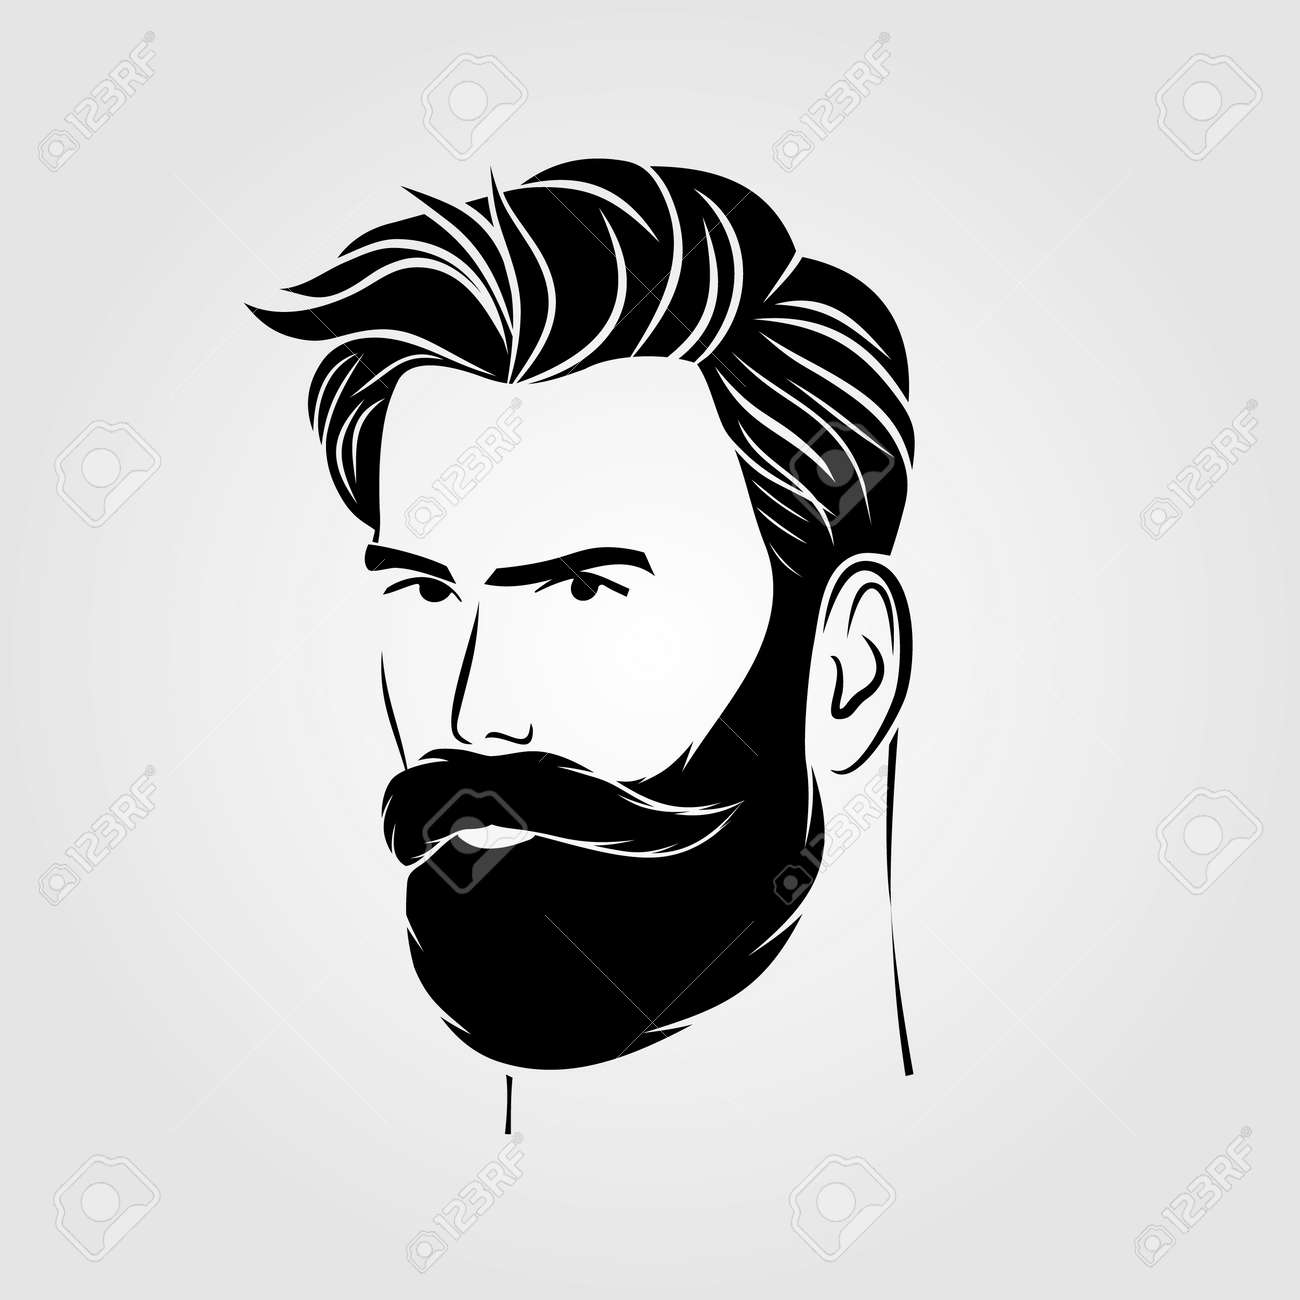 Bearded men, hipster face icon isolated. Vector - 169447754